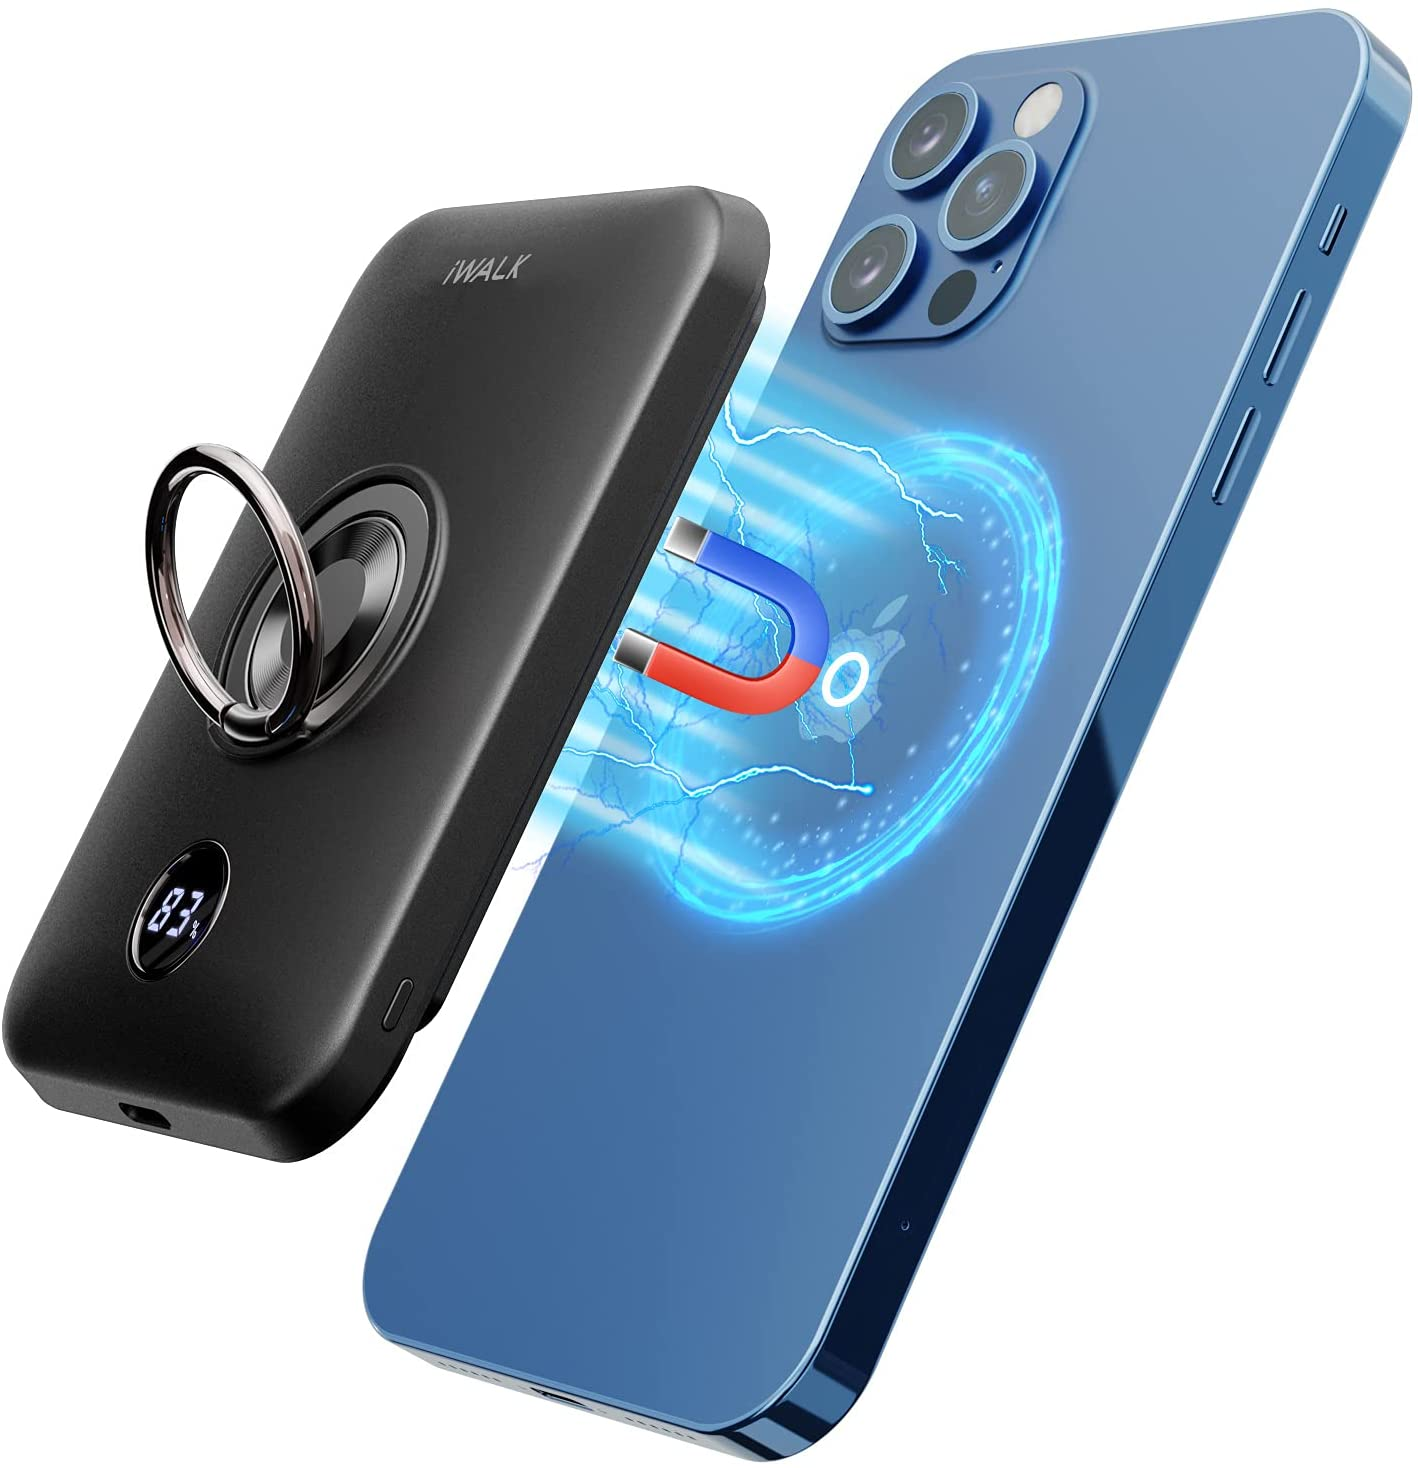 iWALK Magnetic Wireless Power Bank, 6000mAh Portable Charger with Finger Holder, Stronger Magnet Stick for Phone with Unique Mag-Suction Tech, Compatible with iPhone 12/12 Pro/12 Pro Max